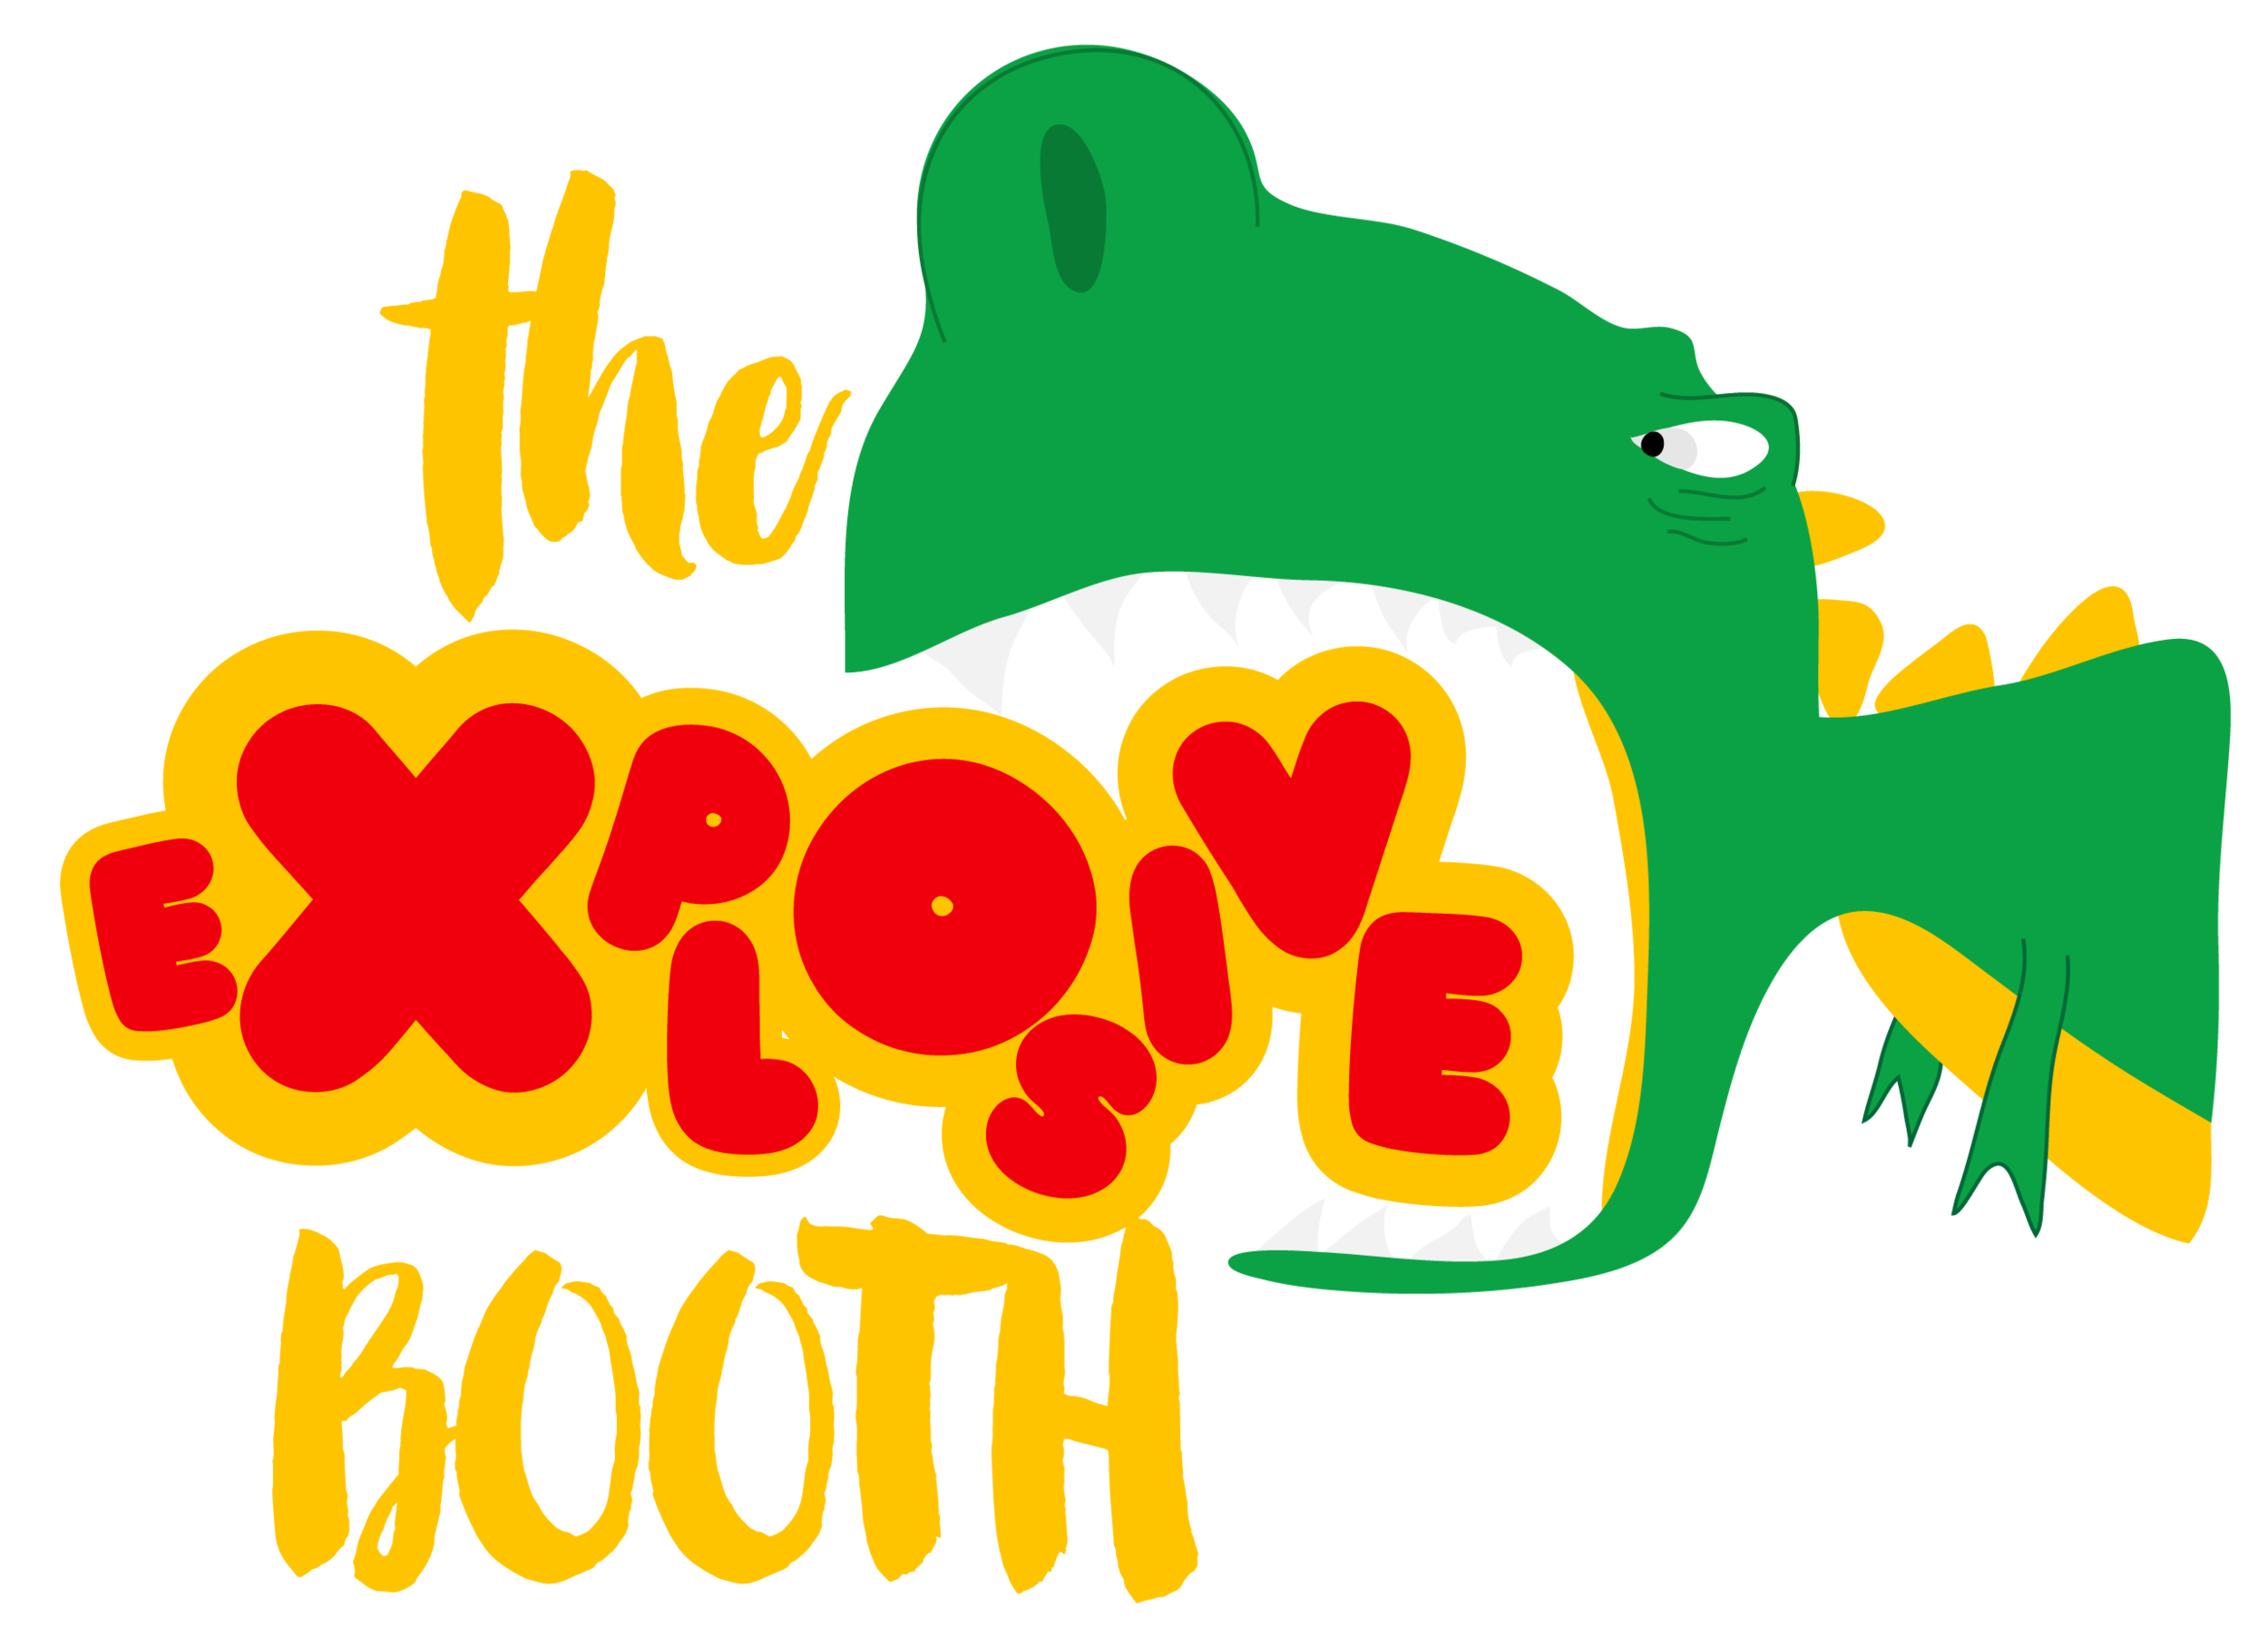 The Explosive Booth